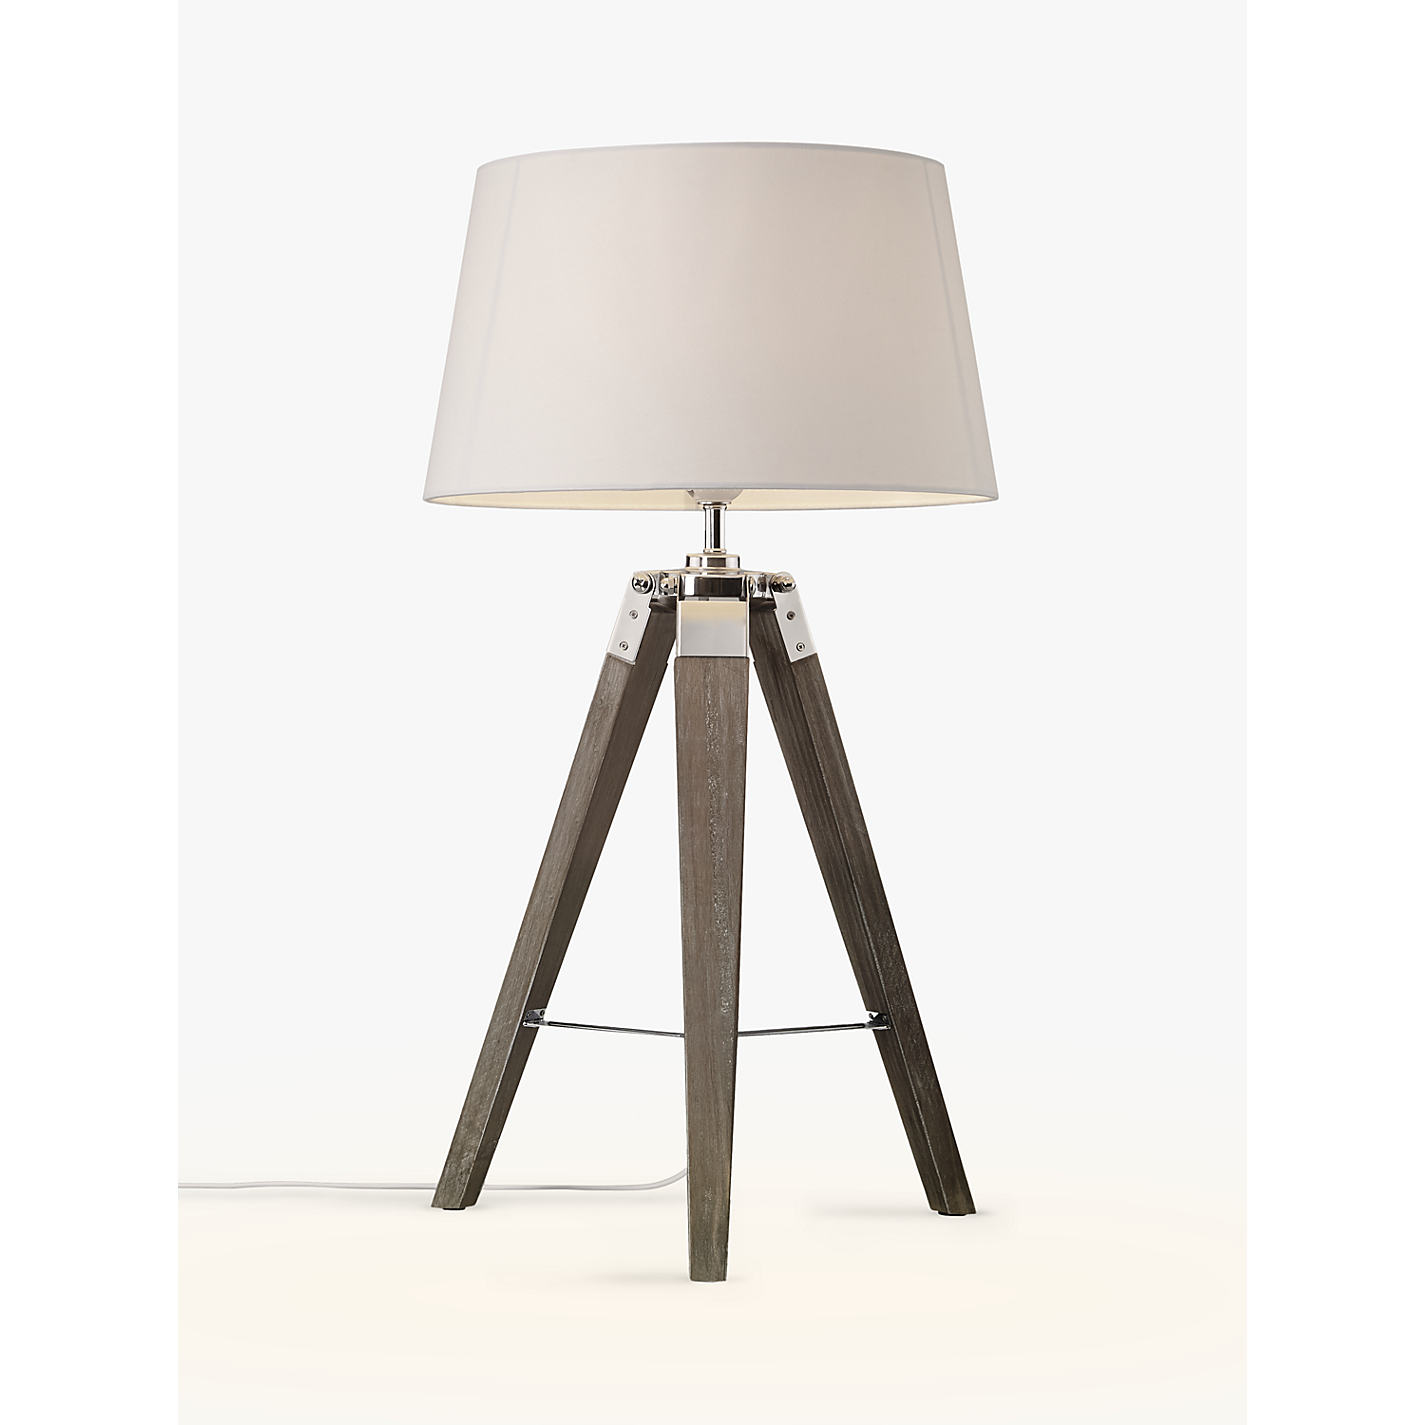 Buy john lewis jacques tripod table lamp john lewis buy john lewis jacques tripod table lamp online at johnlewis geotapseo Image collections